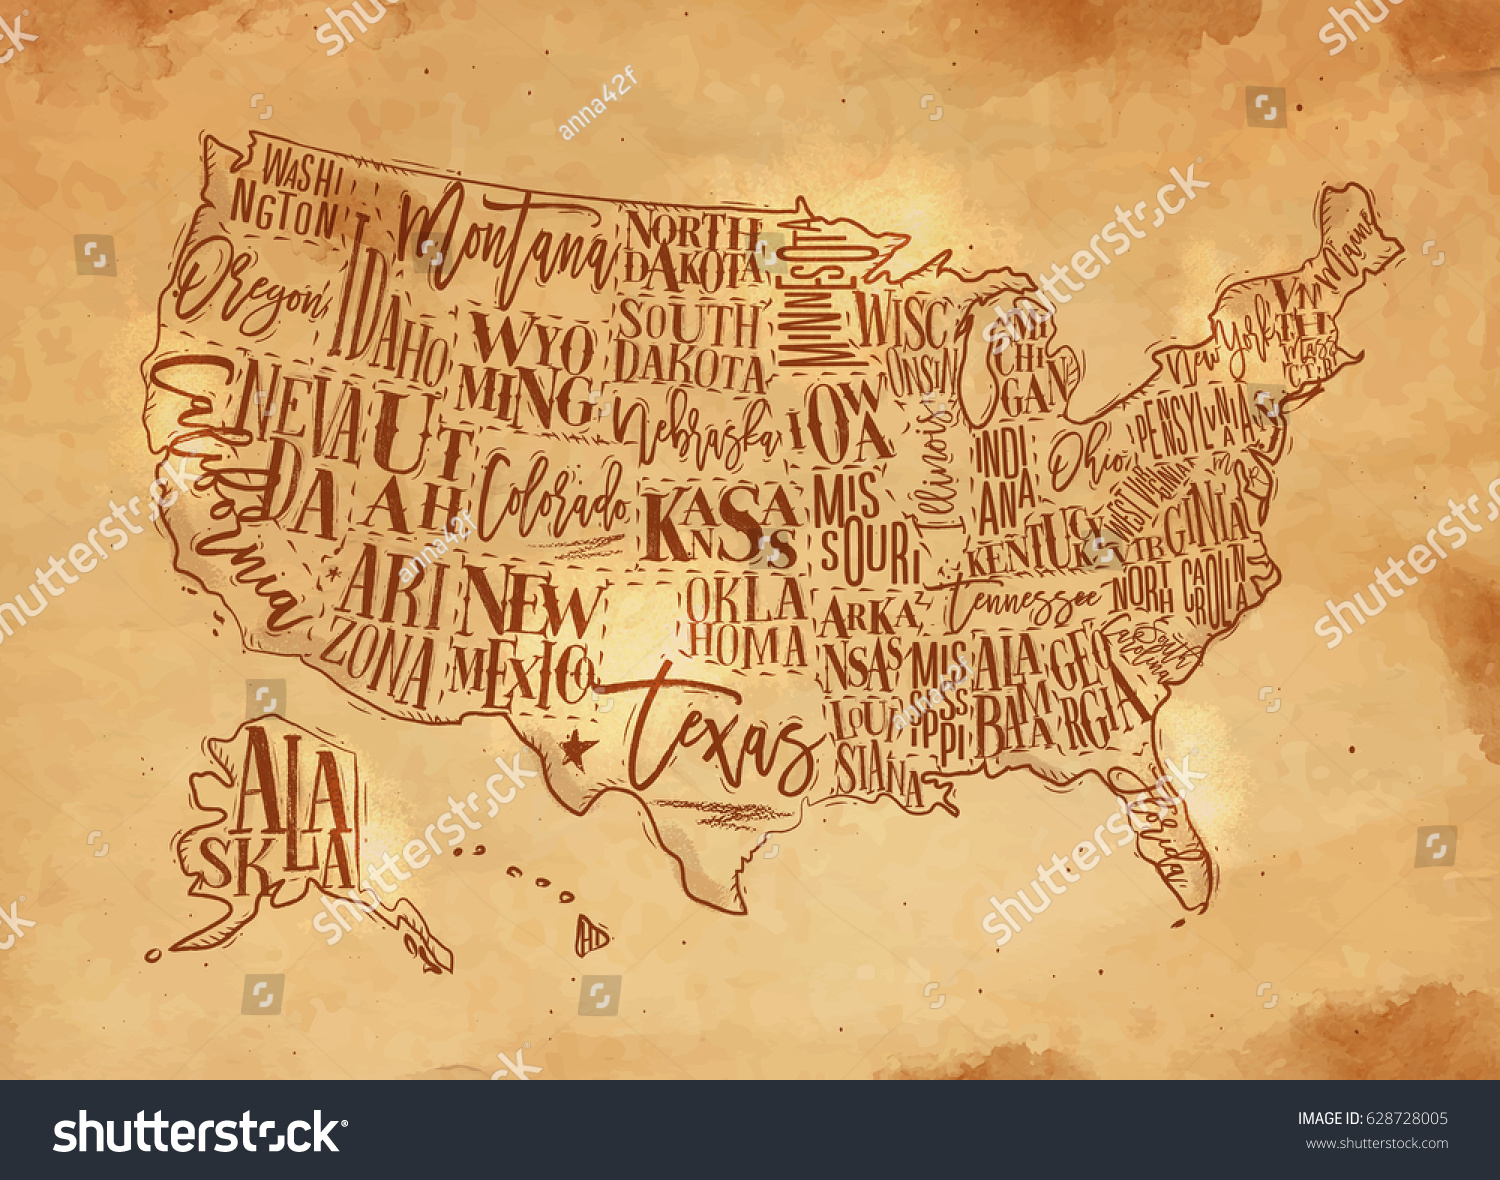 Vintage Usa Map States Inscription California Stock Vector - Map of nevada and arizona usa